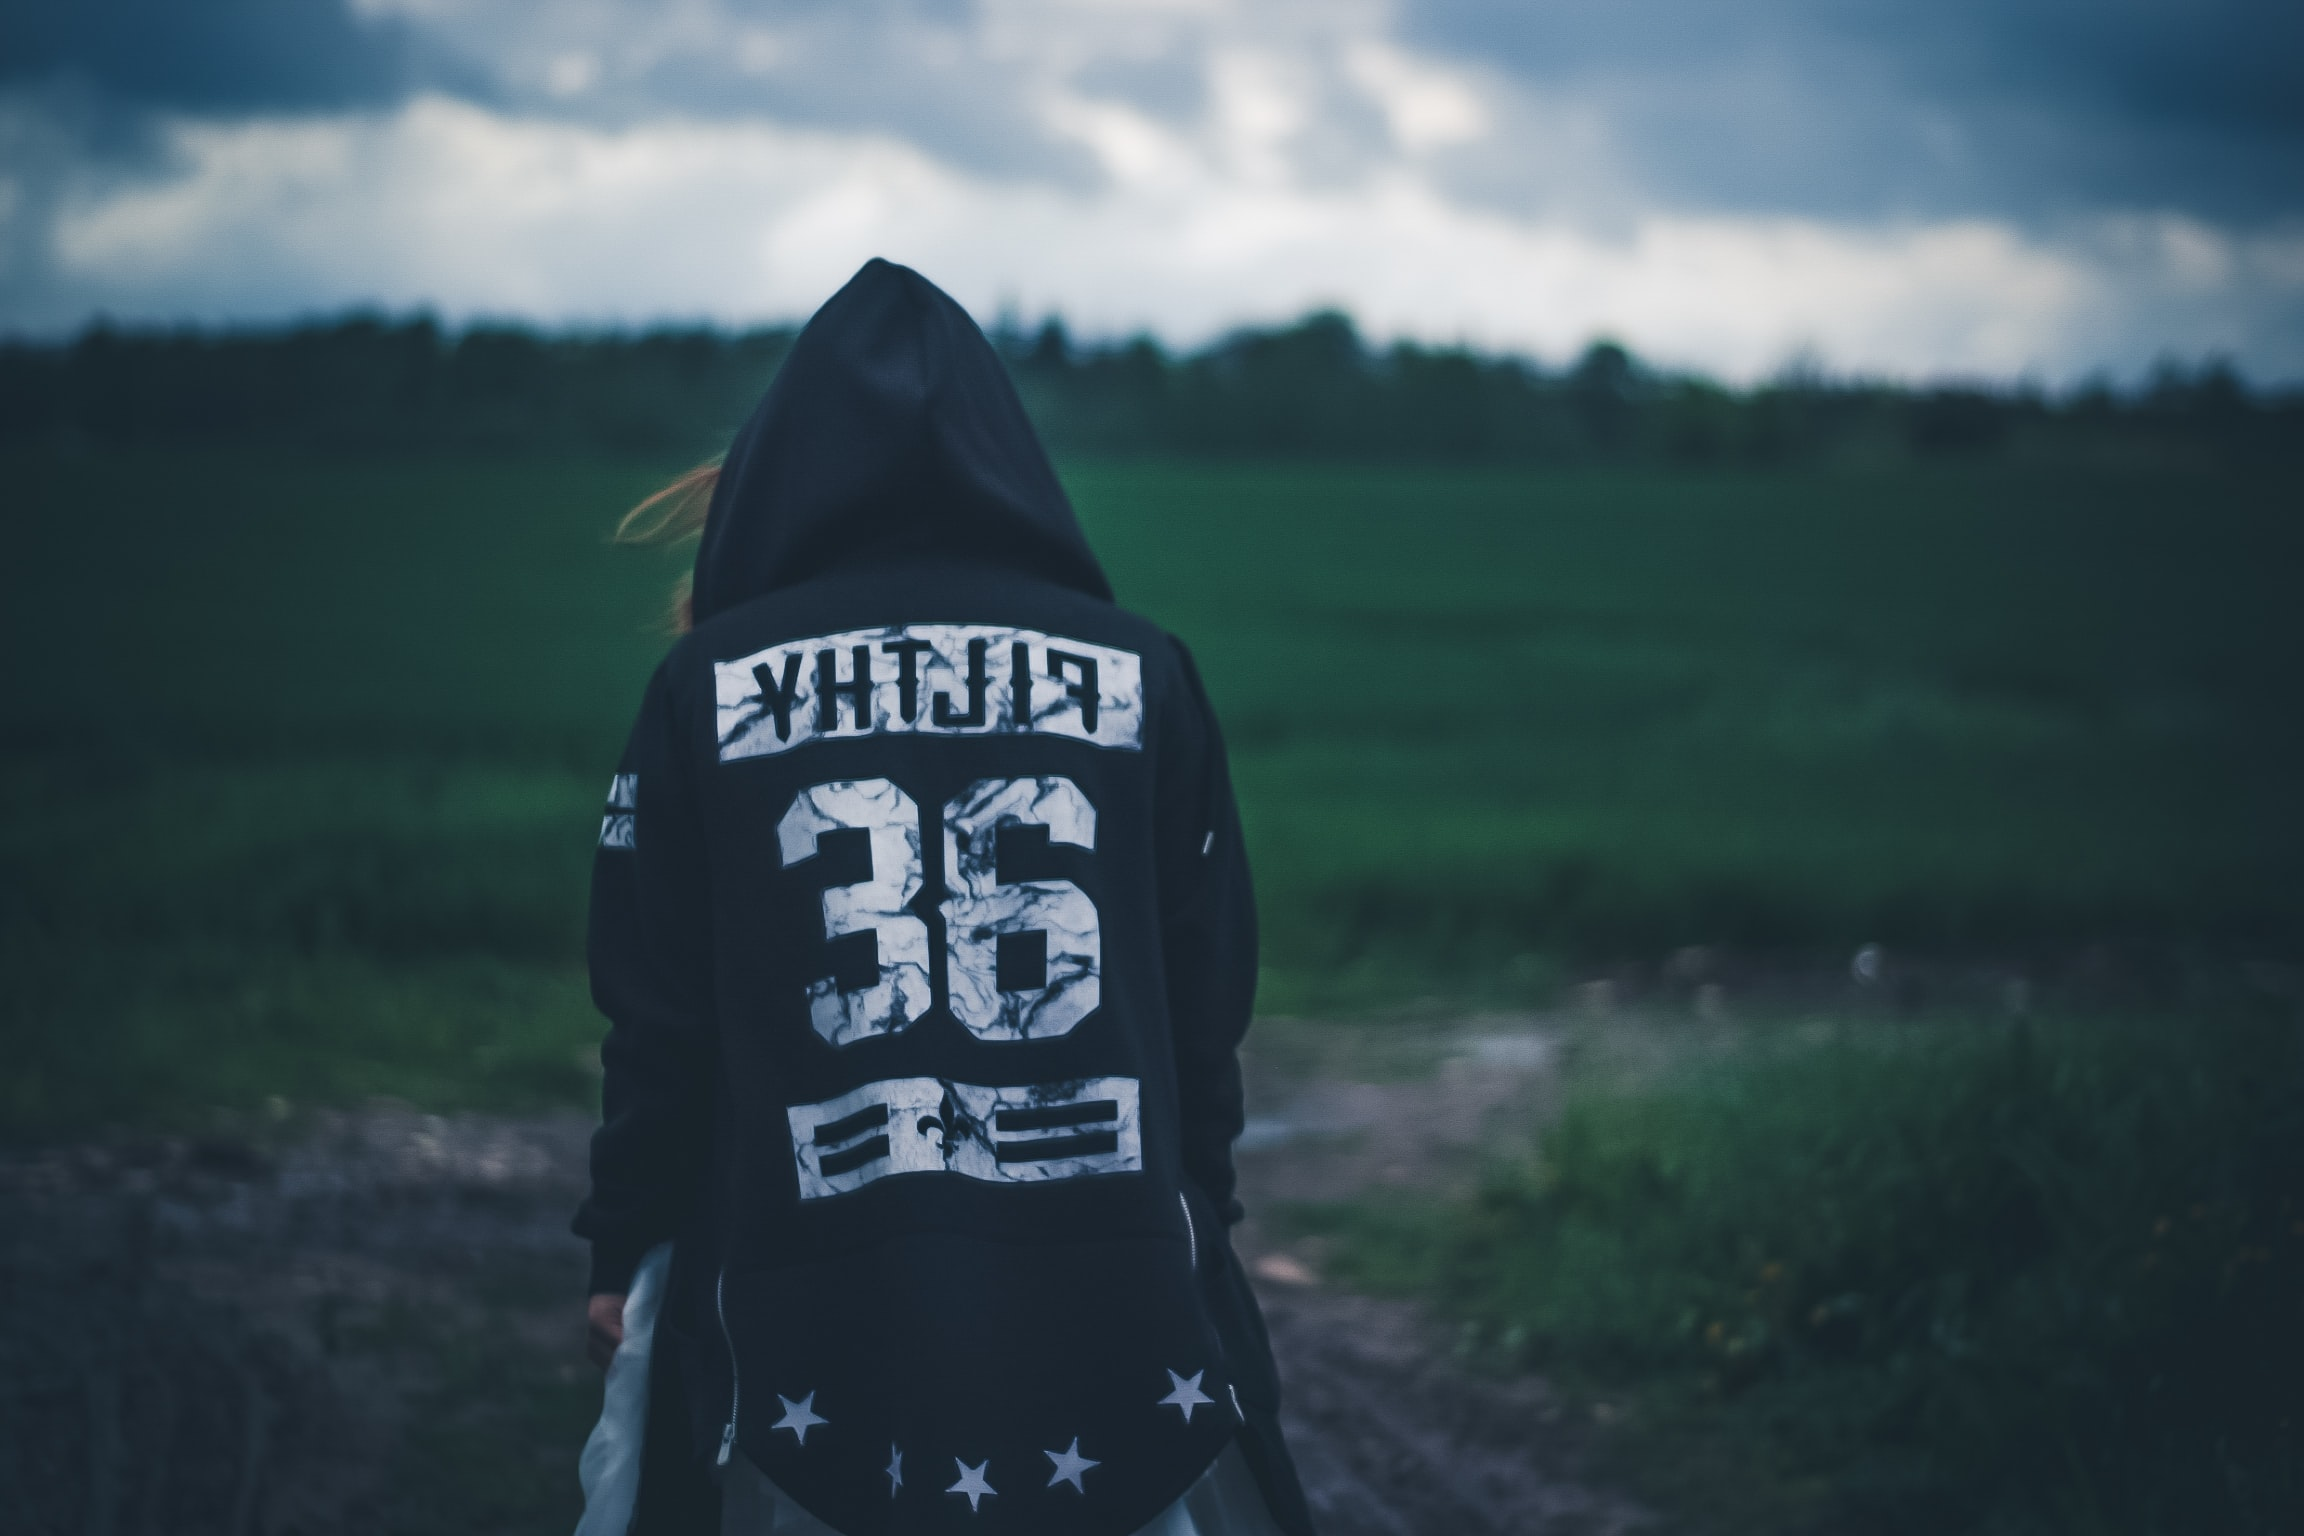 person wearing hooded jacket staring at grass